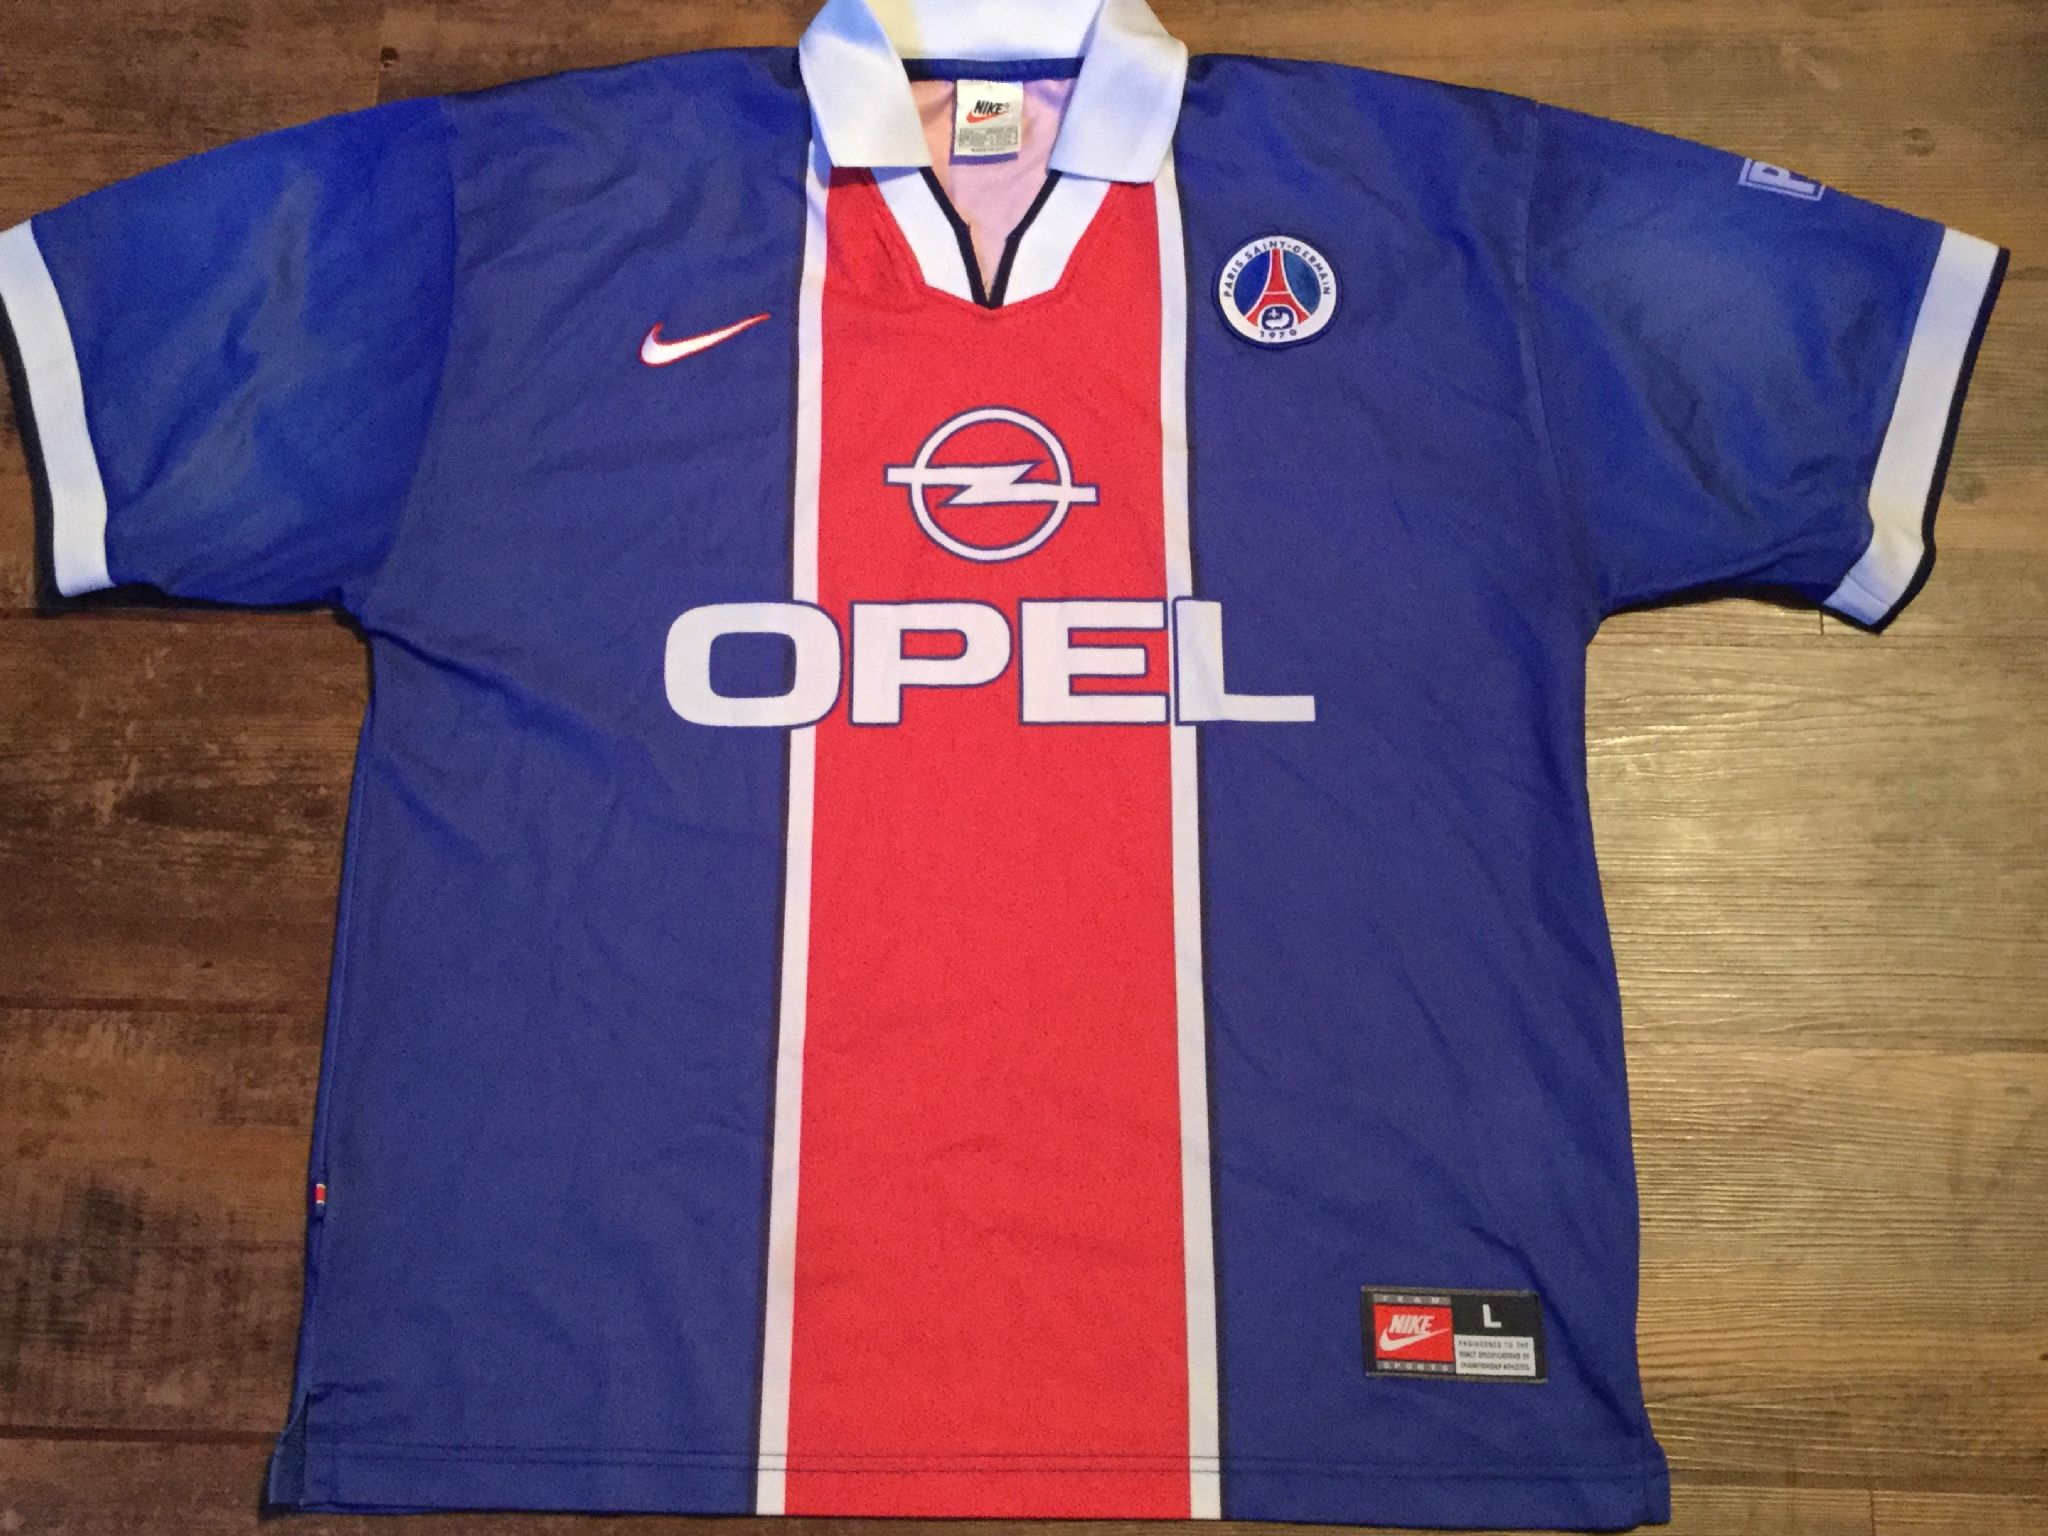 790b31ad178c0 1997 1998 Paris Saint Germain PSG Football Shirt Adults Large Maillot